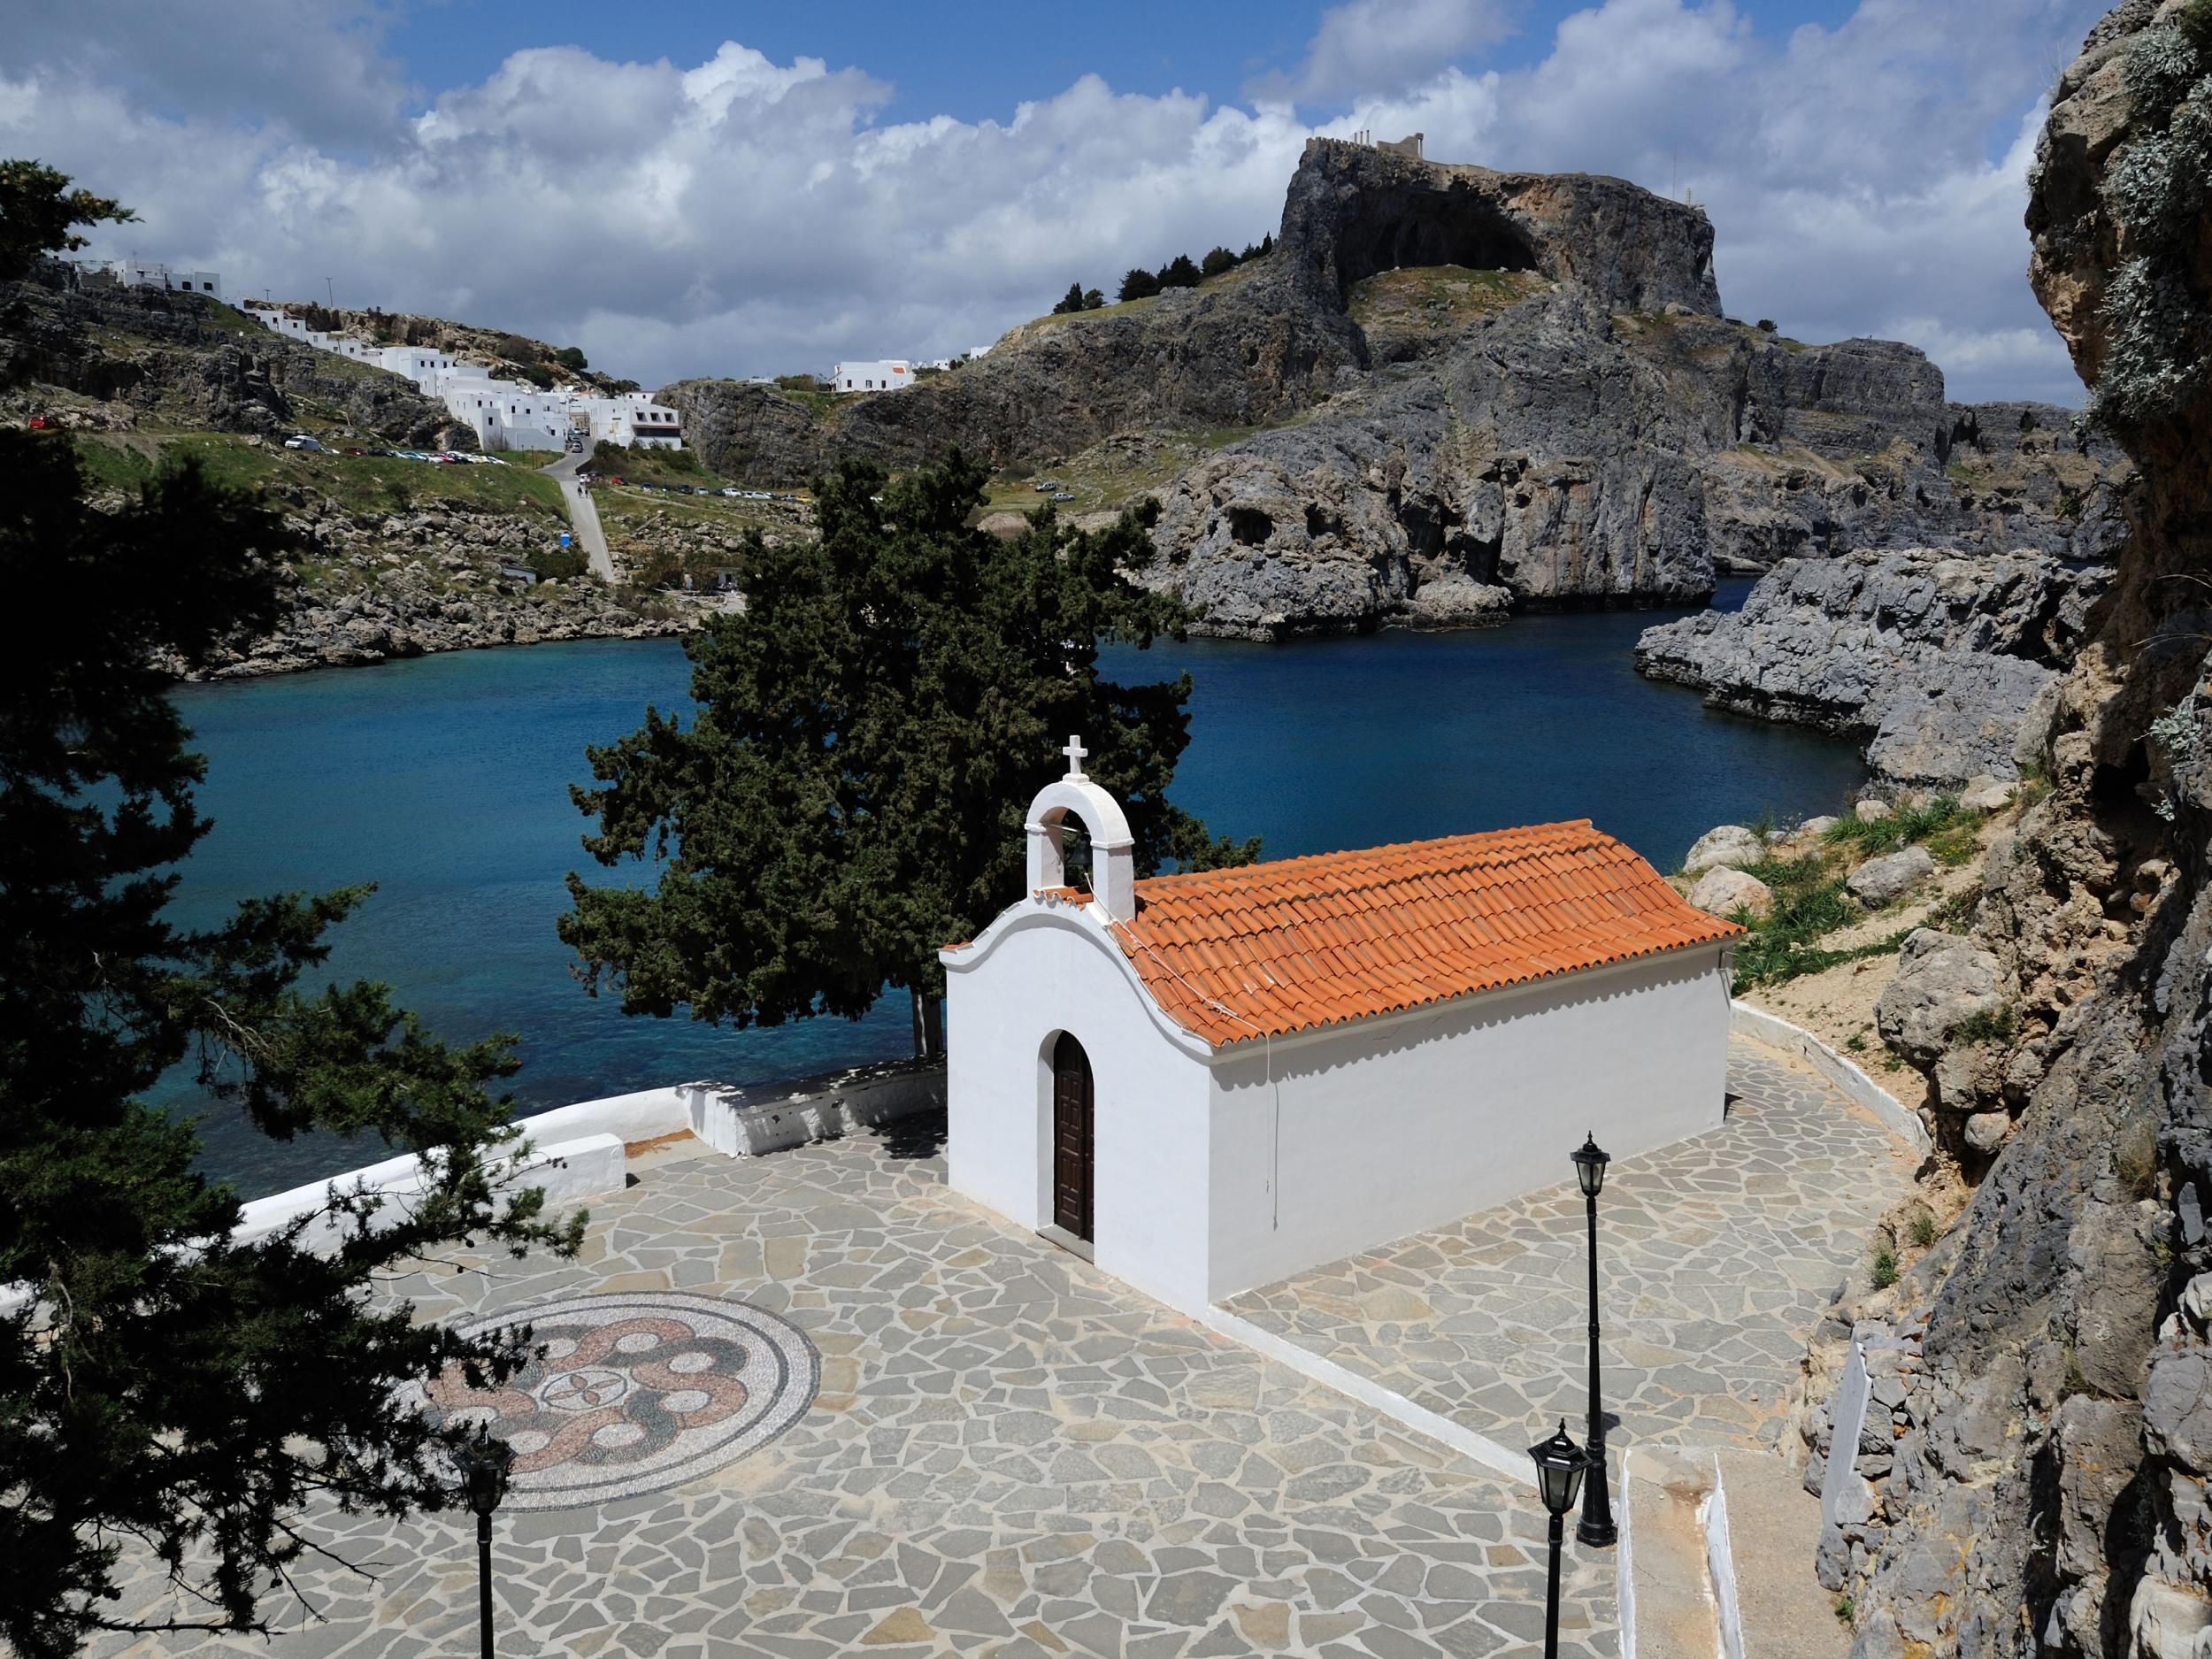 All foreign weddings banned in Greek Island chapel after 'sex' photo